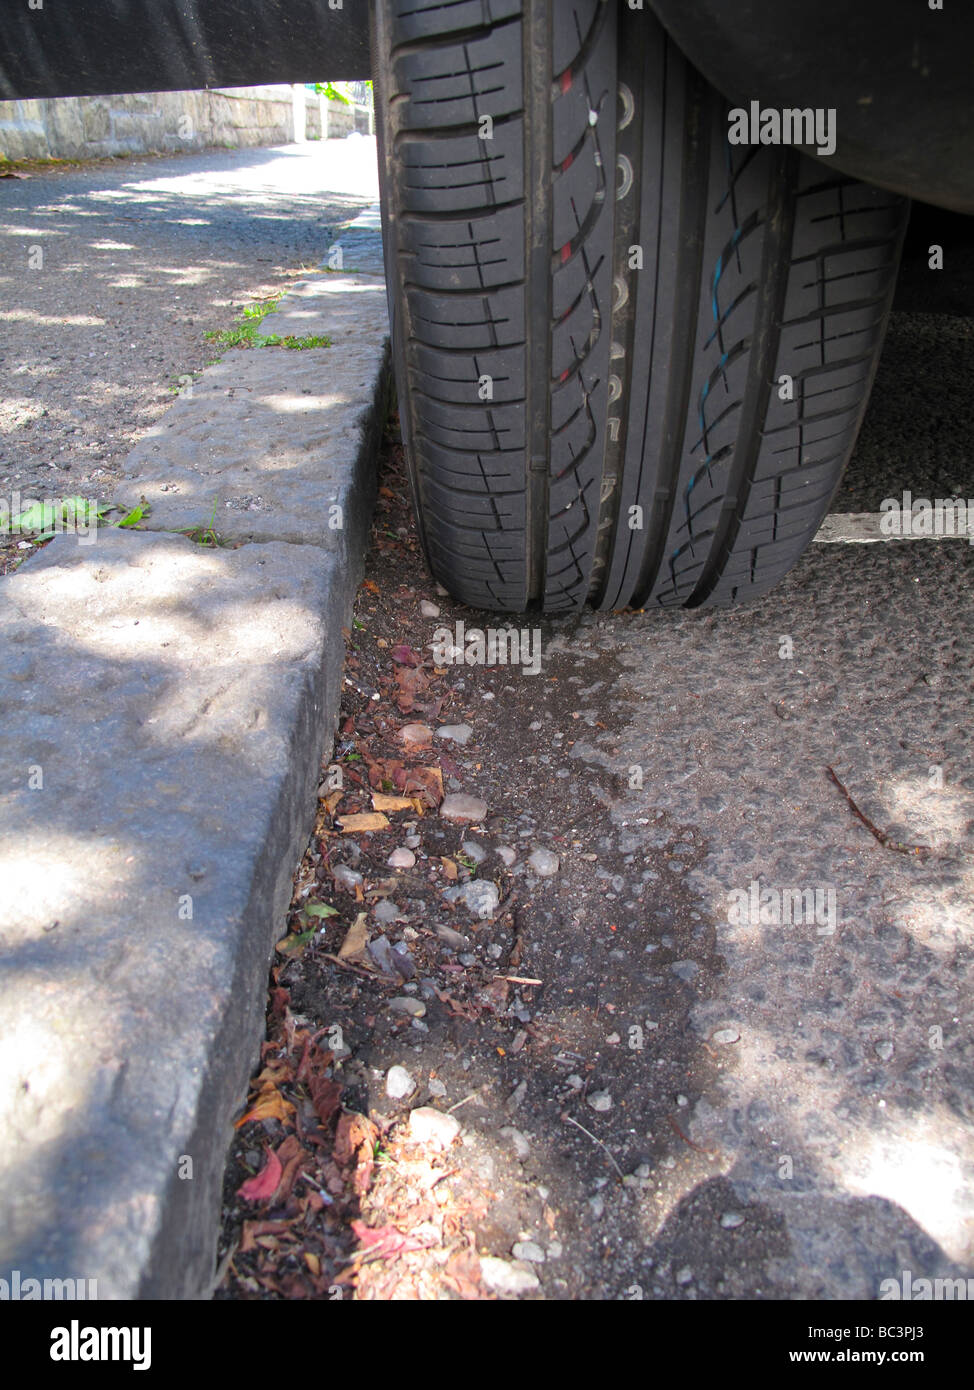 Parked car tyre at kerb - Stock Image